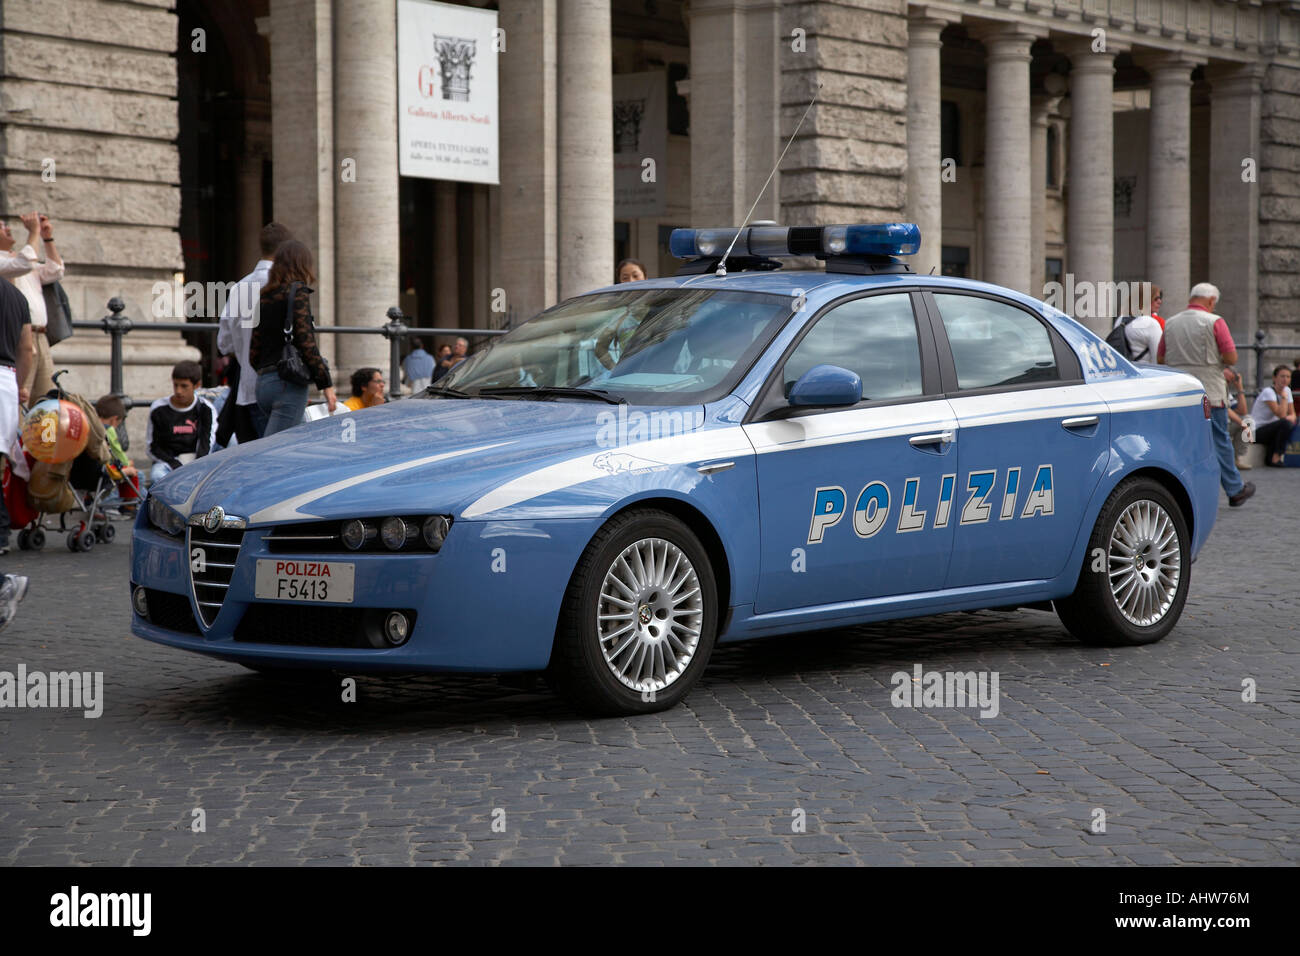 fast alfa romeo 159 squadra volante police car in piazza colonna rome stock photo royalty free. Black Bedroom Furniture Sets. Home Design Ideas